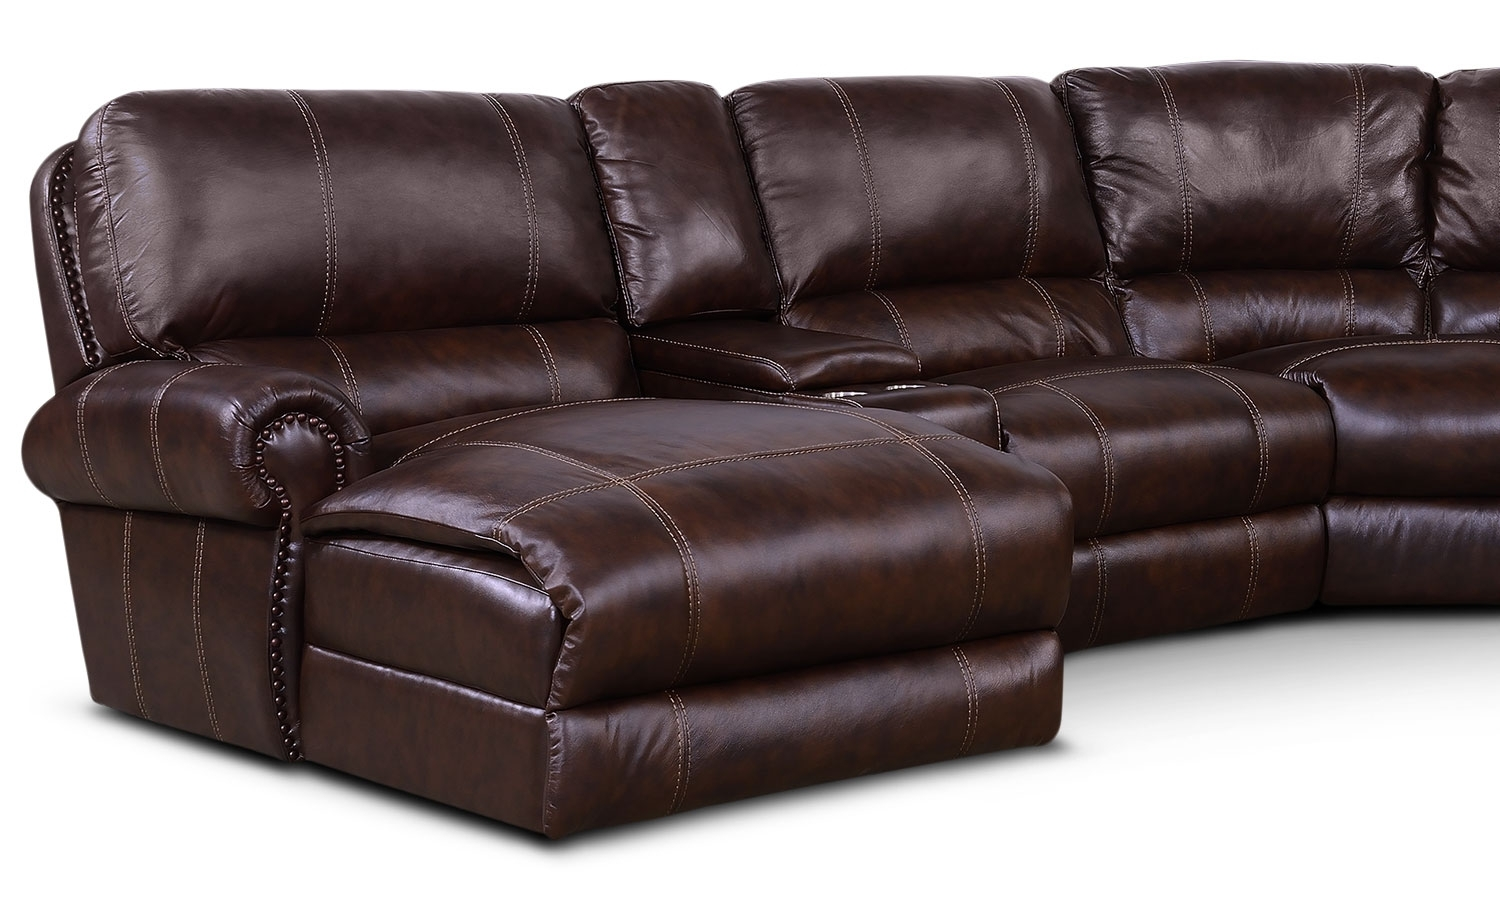 Dartmouth 6 Piece Power Reclining Sectional W/ Left Facing Chaise Throughout Norfolk Chocolate 6 Piece Sectionals With Laf Chaise (View 5 of 25)